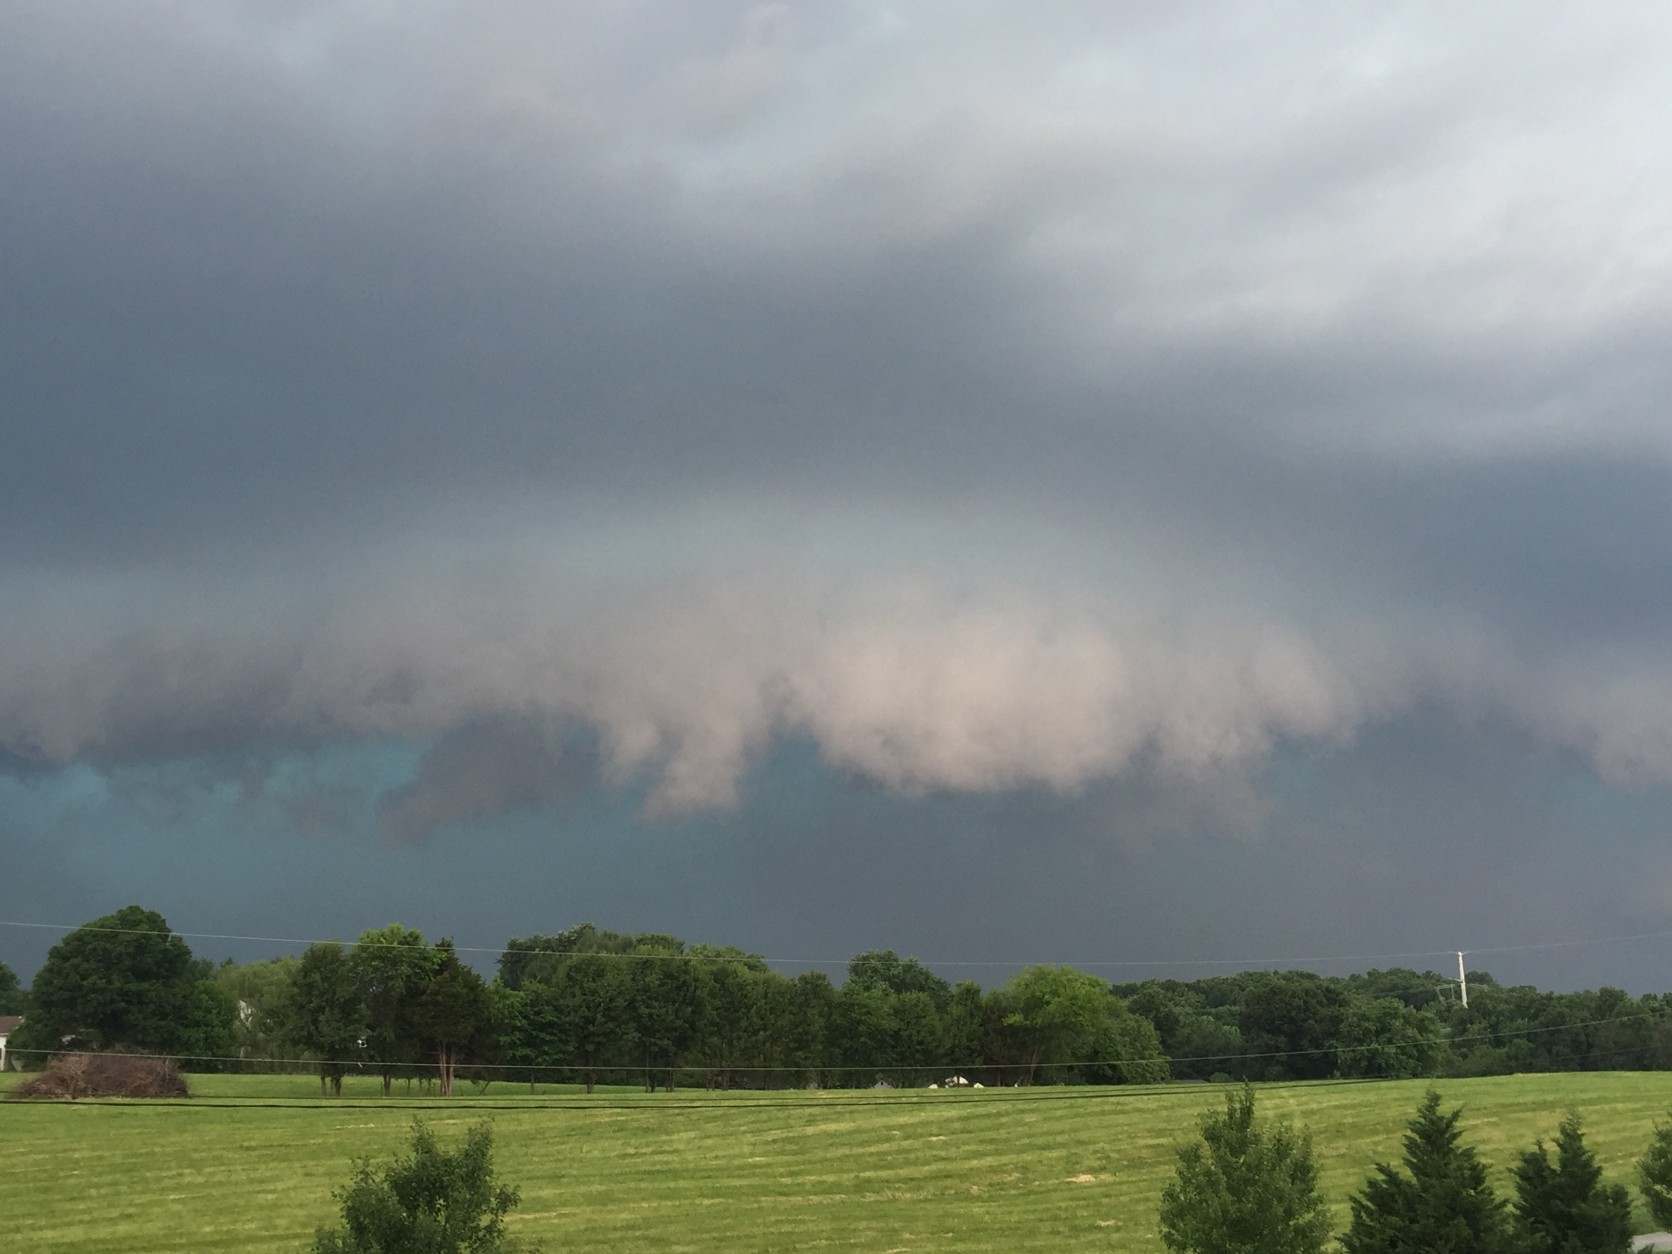 Storm clouds in Scaggsville, Maryland on June 21, 2016. (Courtesy Carrie D. Bright)